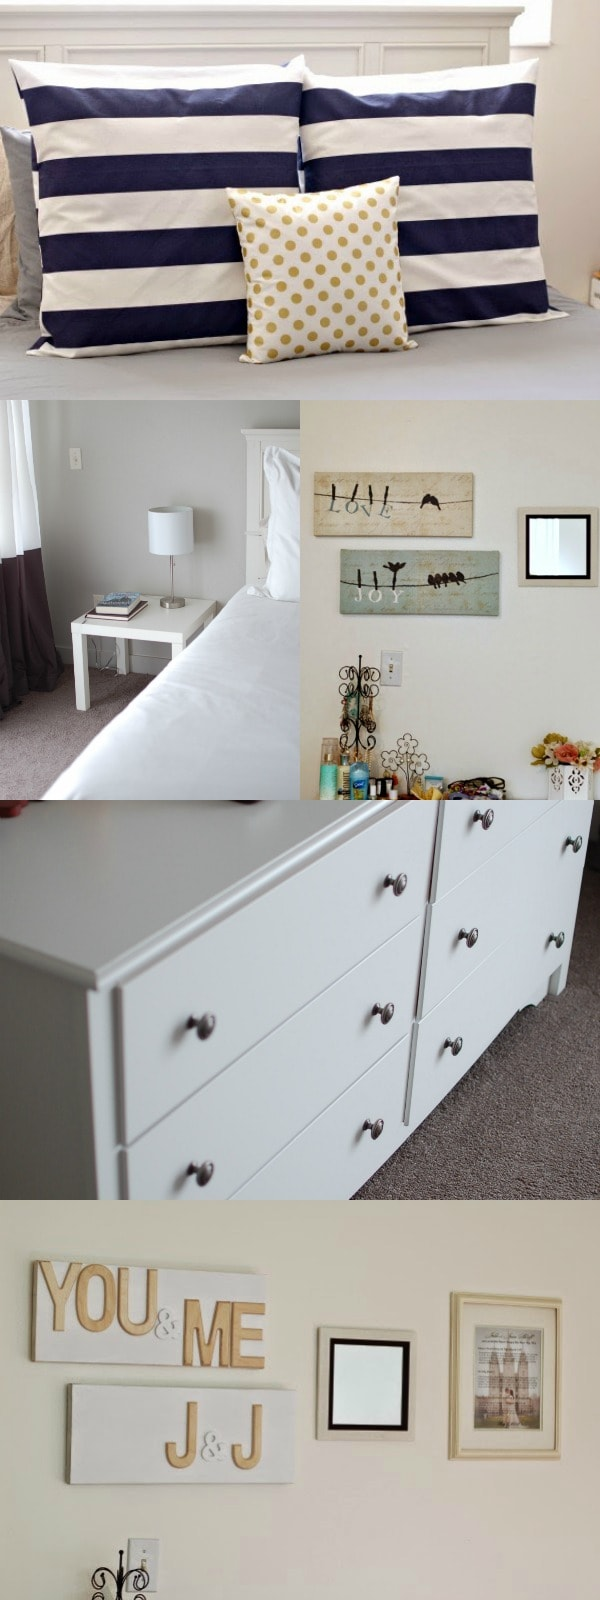 Bedroom decor collage before modern makeover